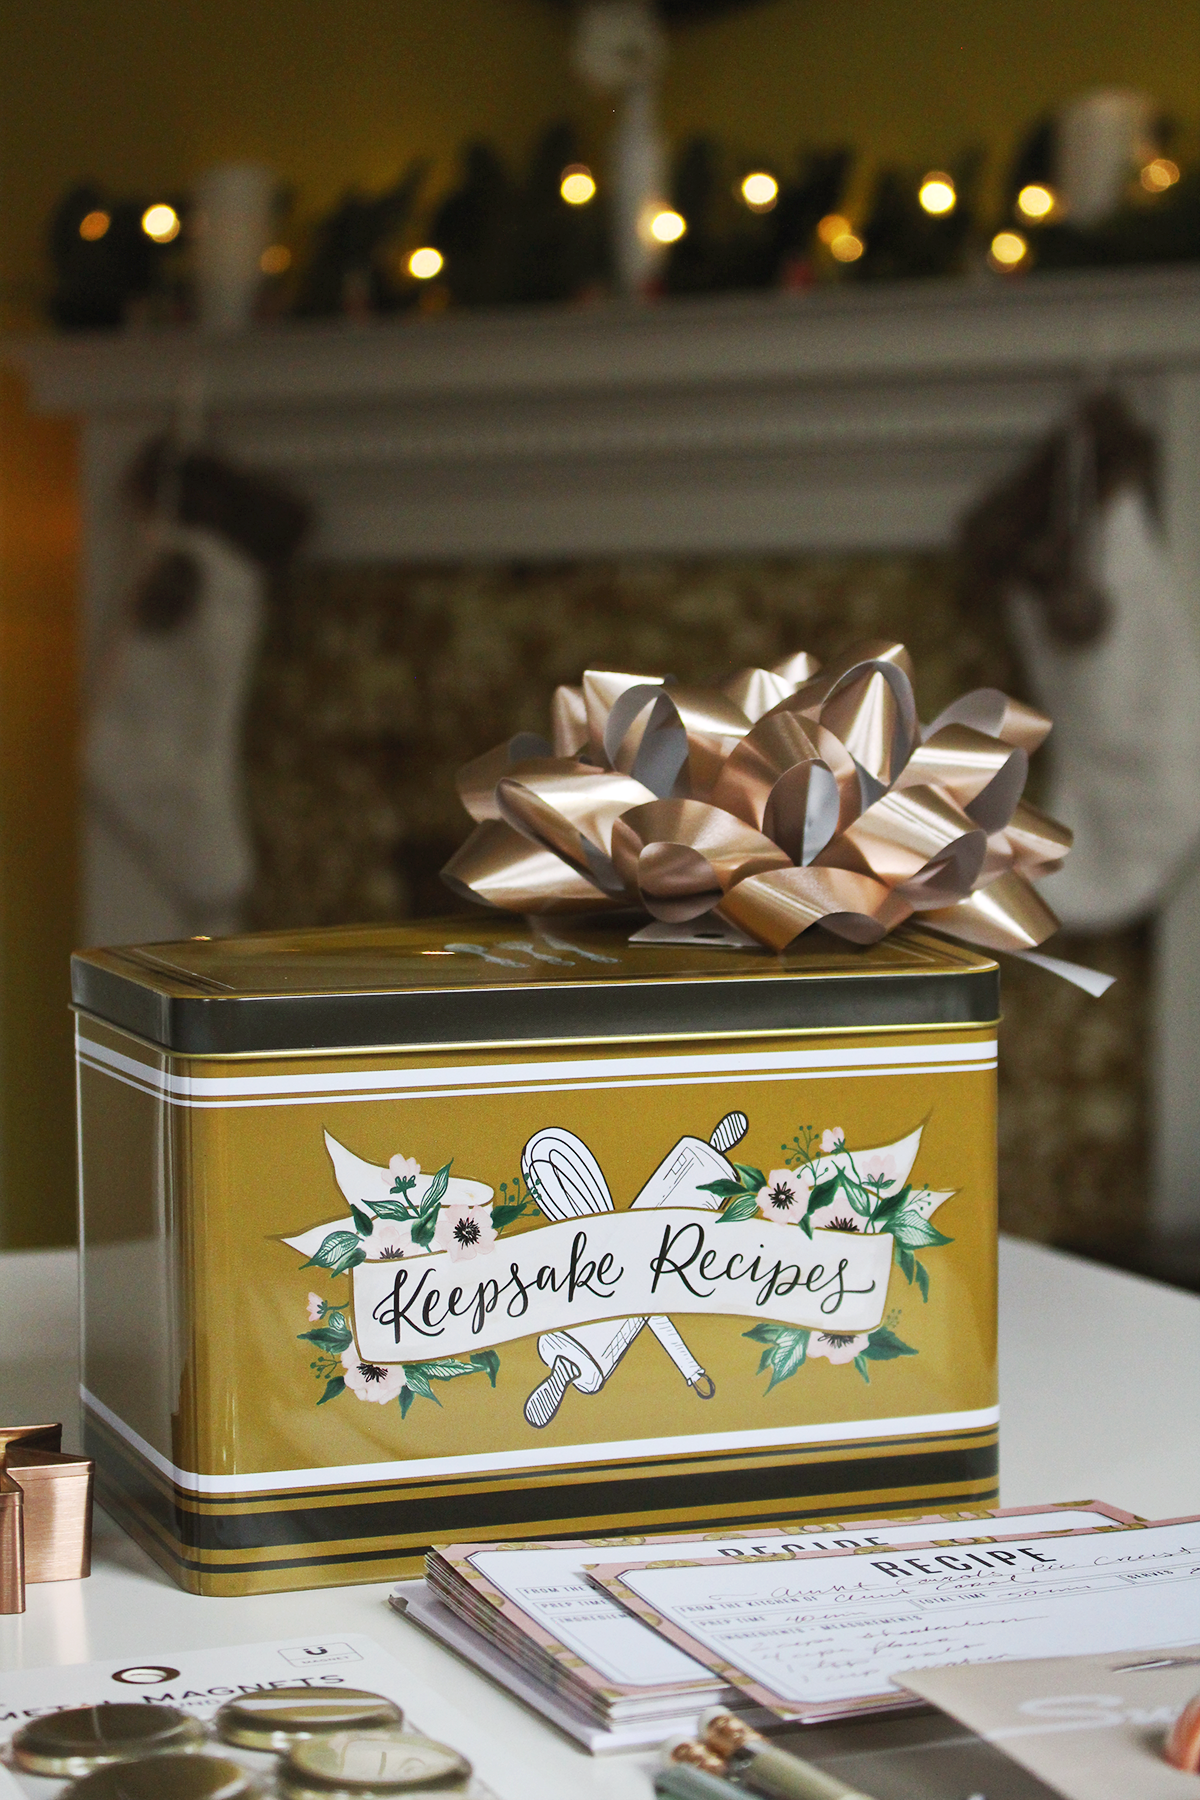 Recipe Tin For Holiday Gifting